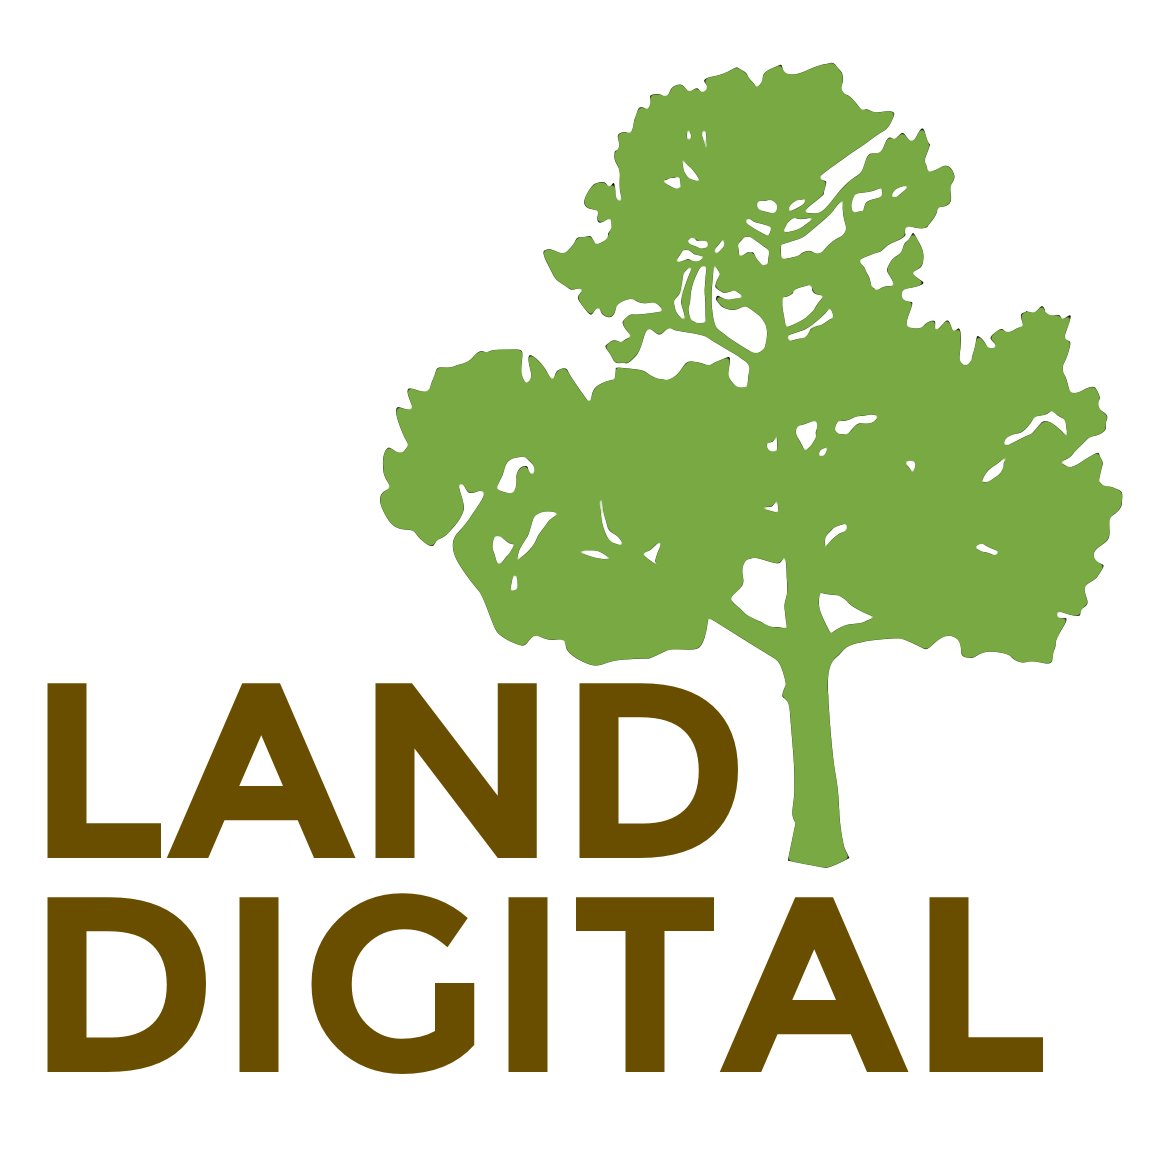 Land Digital Ltd